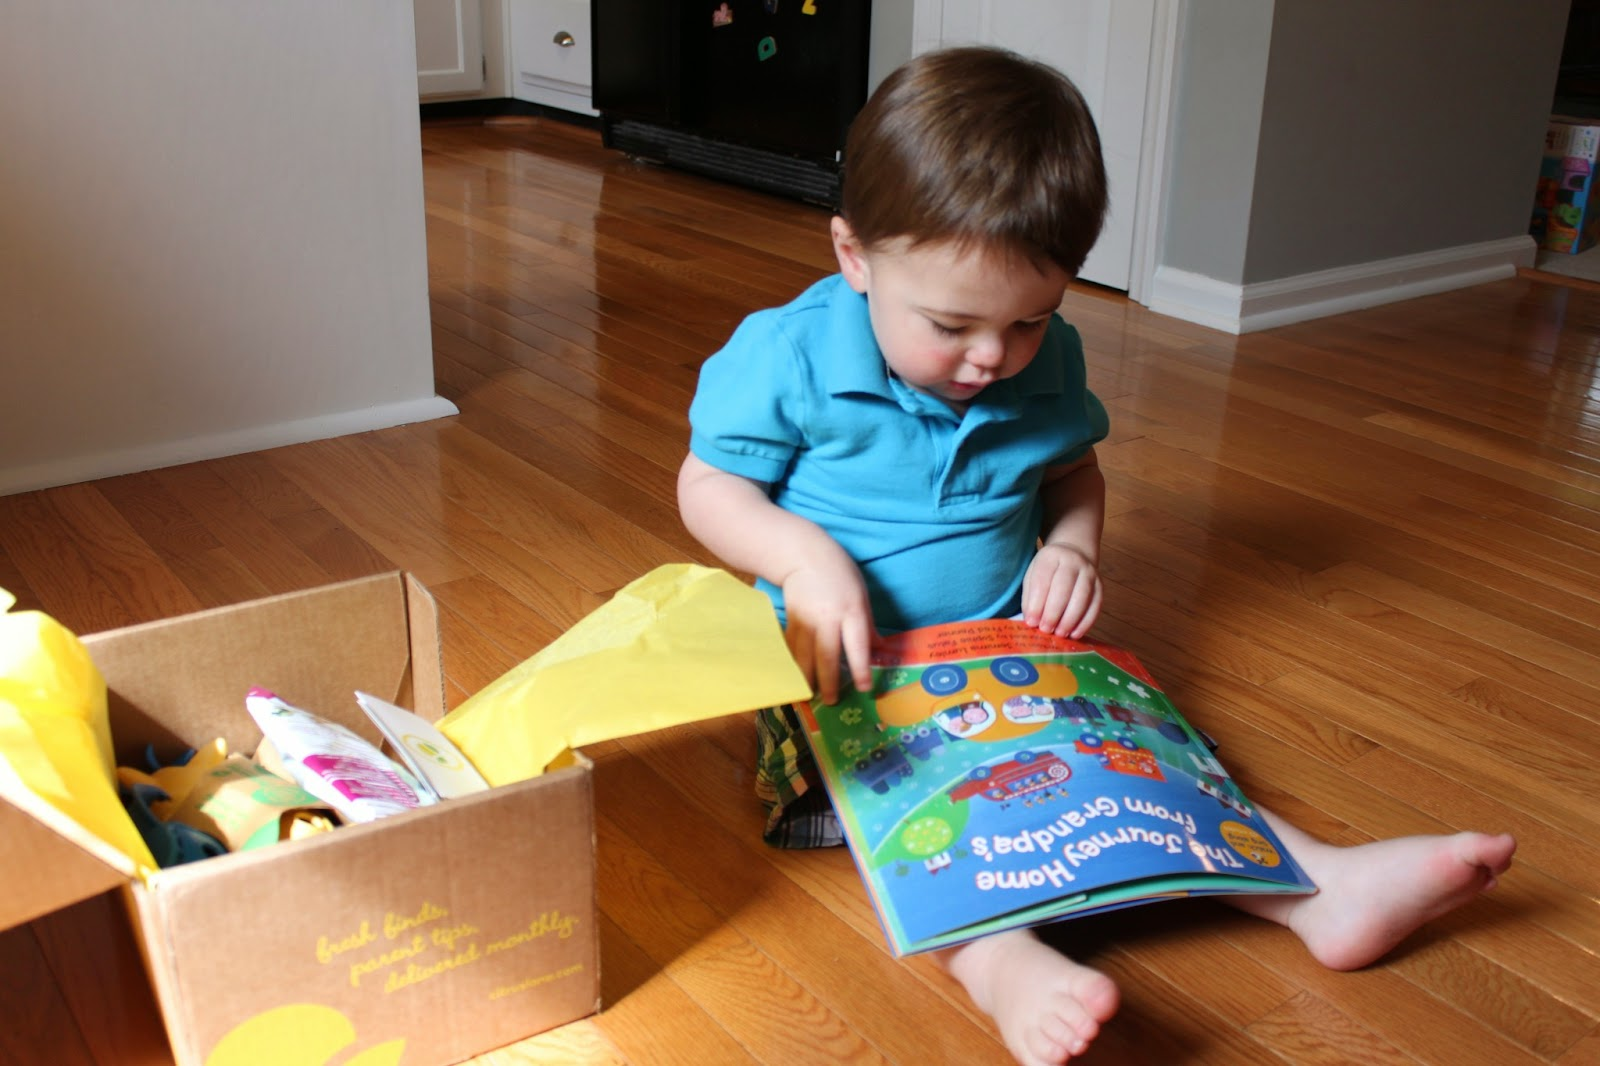 New this month: Moving every which way. It's hard to believe that just a few months ago your toddler was, well, toddling about, carefully testing her newfound walking skills.